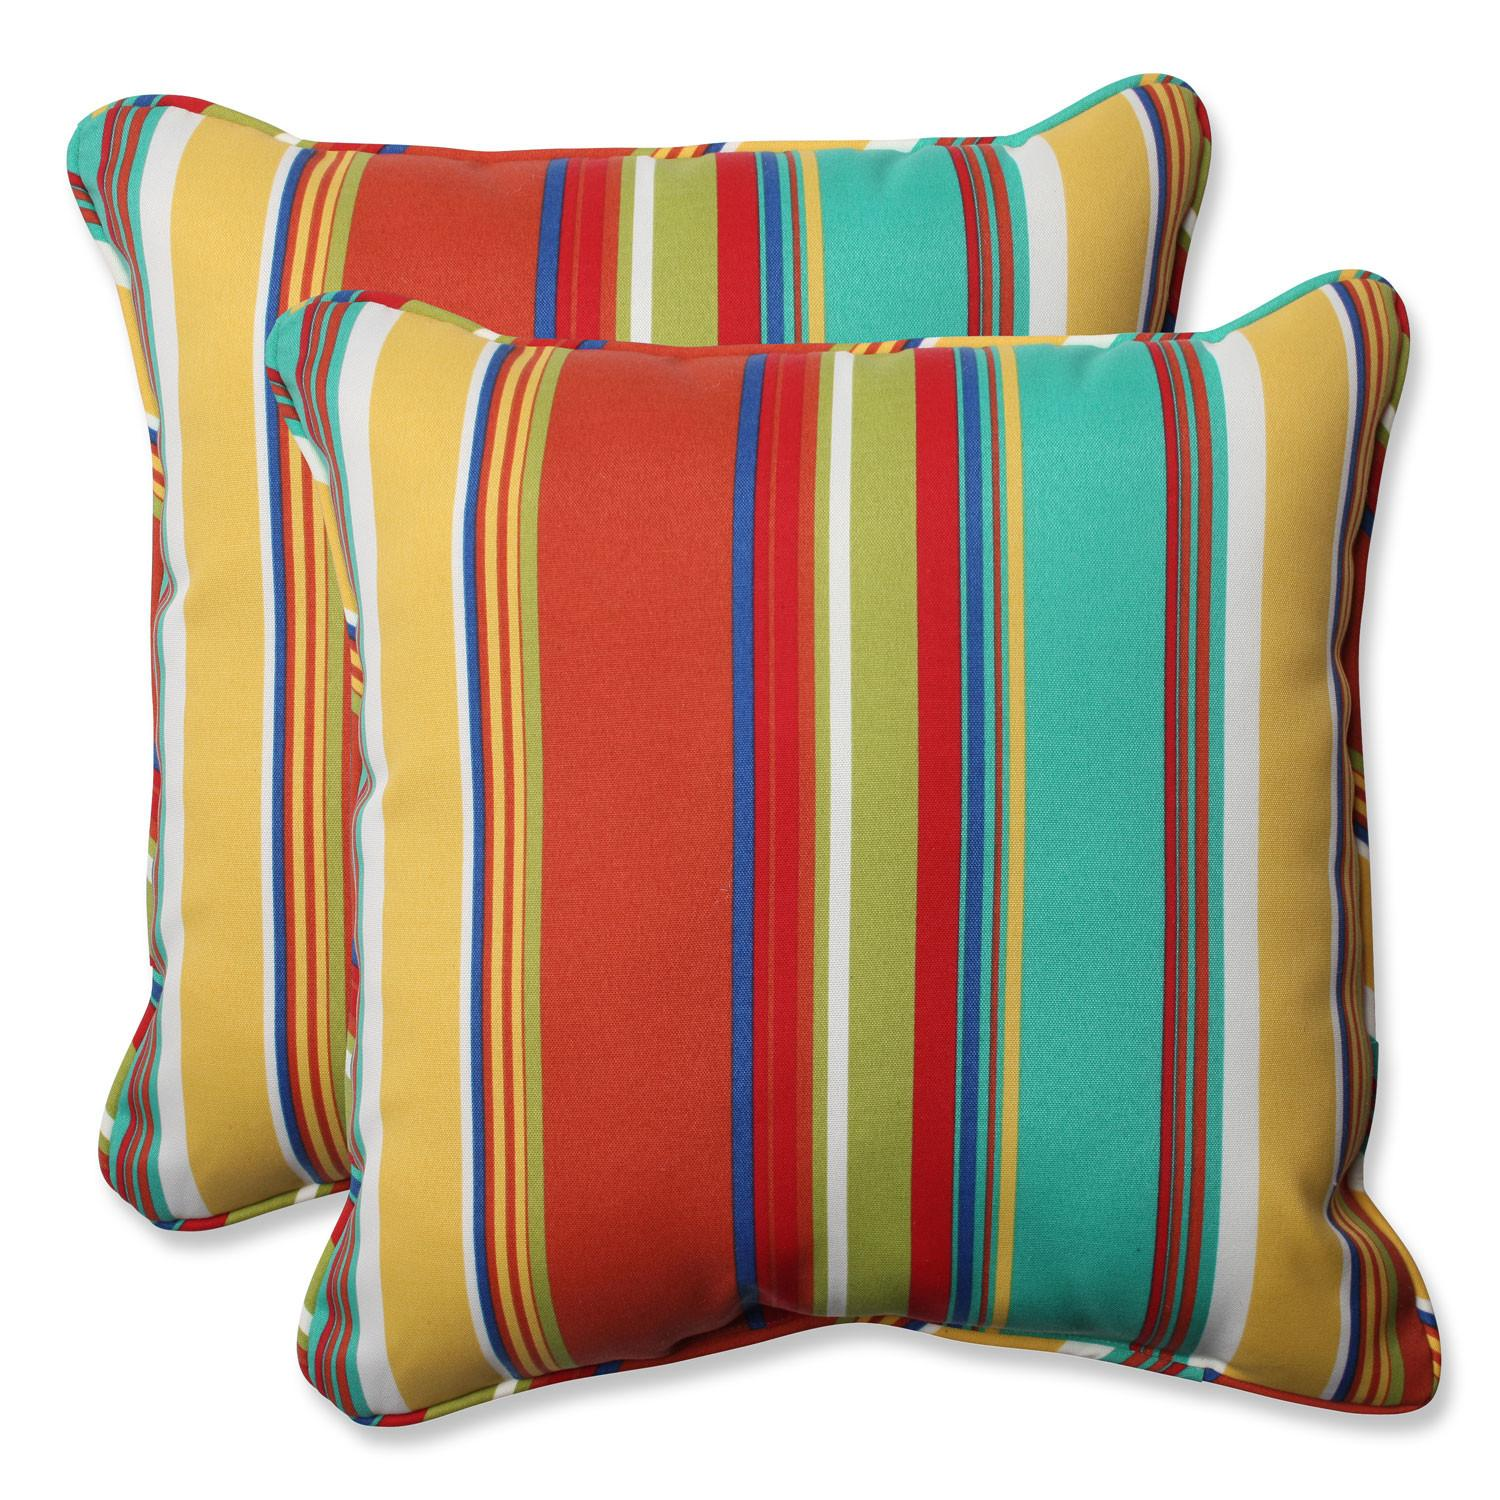 Westport Spring Inch Outdoor Throw Pillow Set